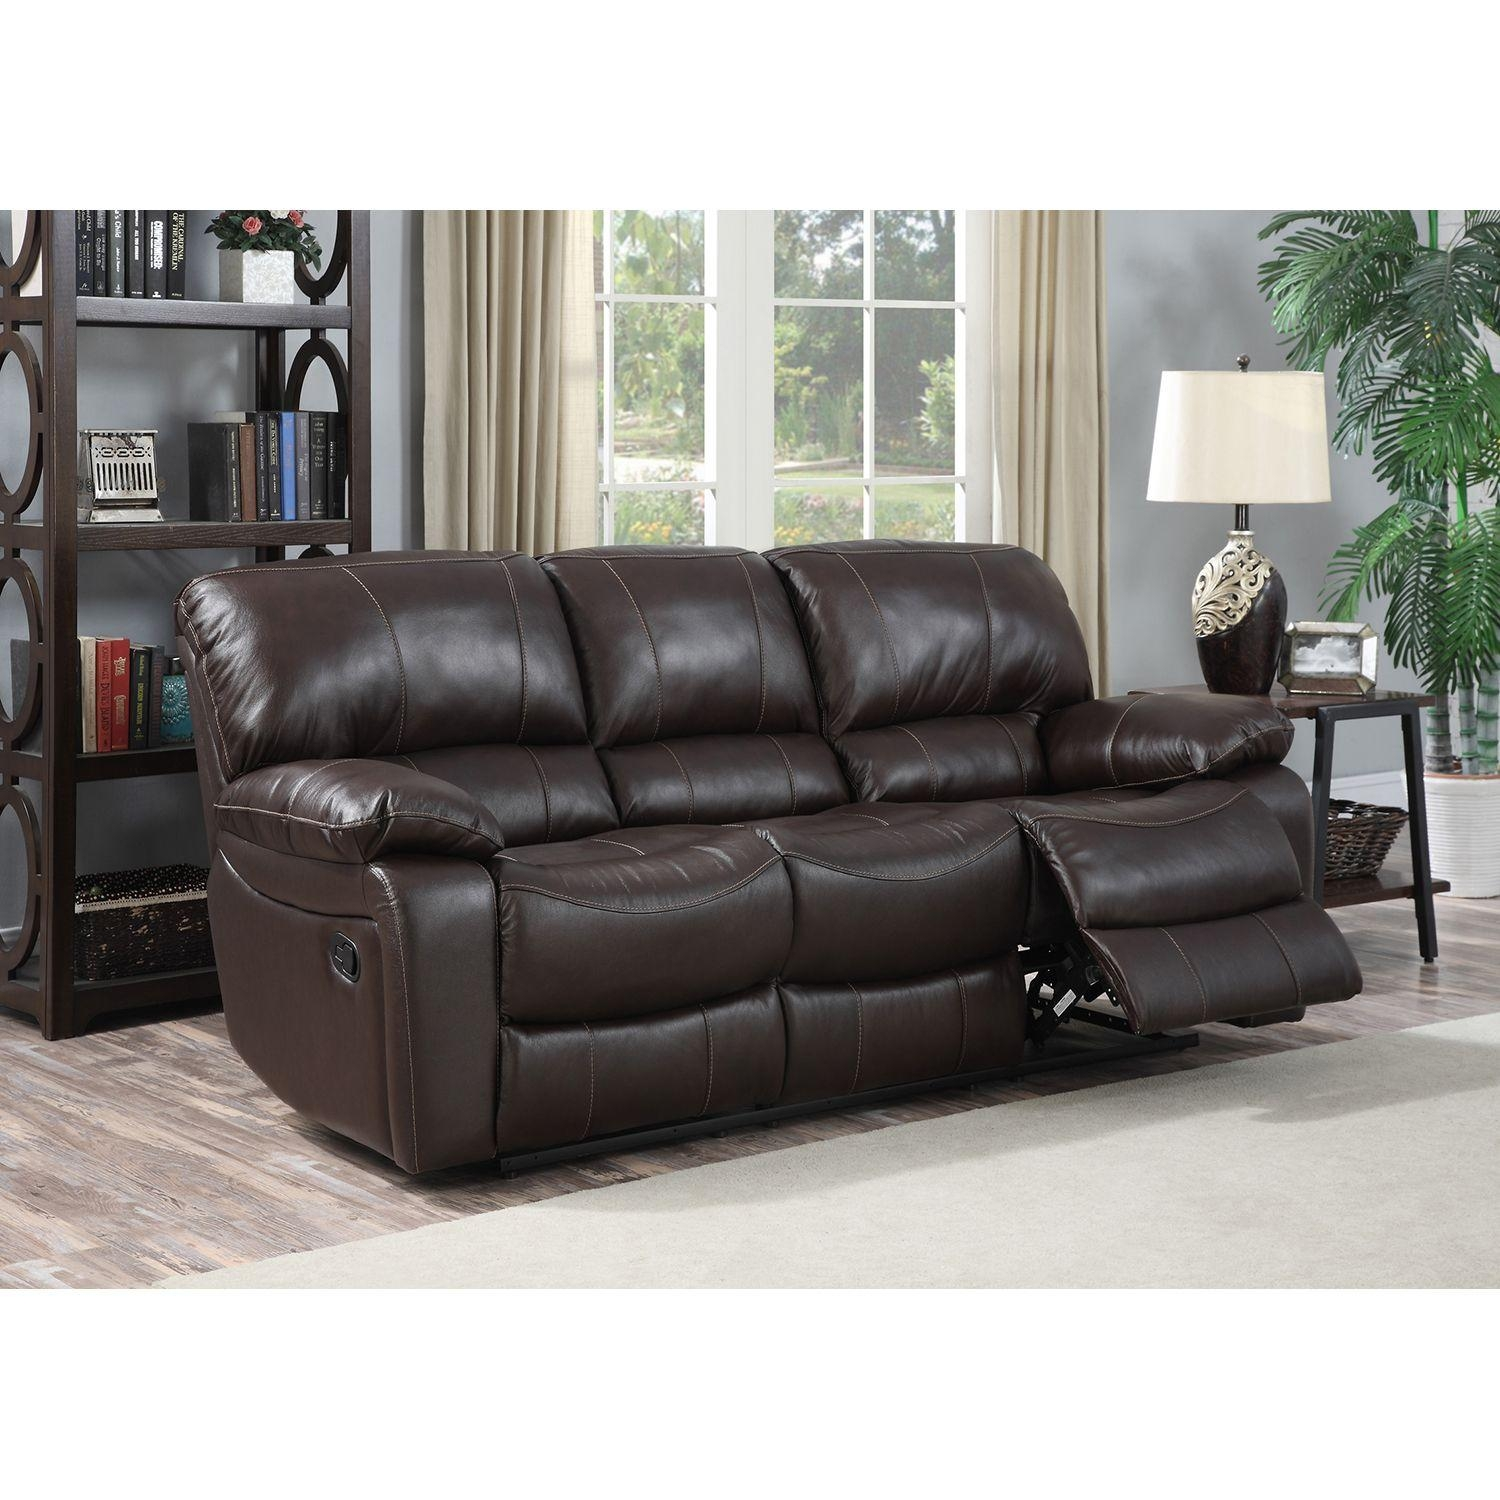 Recliner Leather Sofas: 20 Top Berkline Leather Recliner Sofas